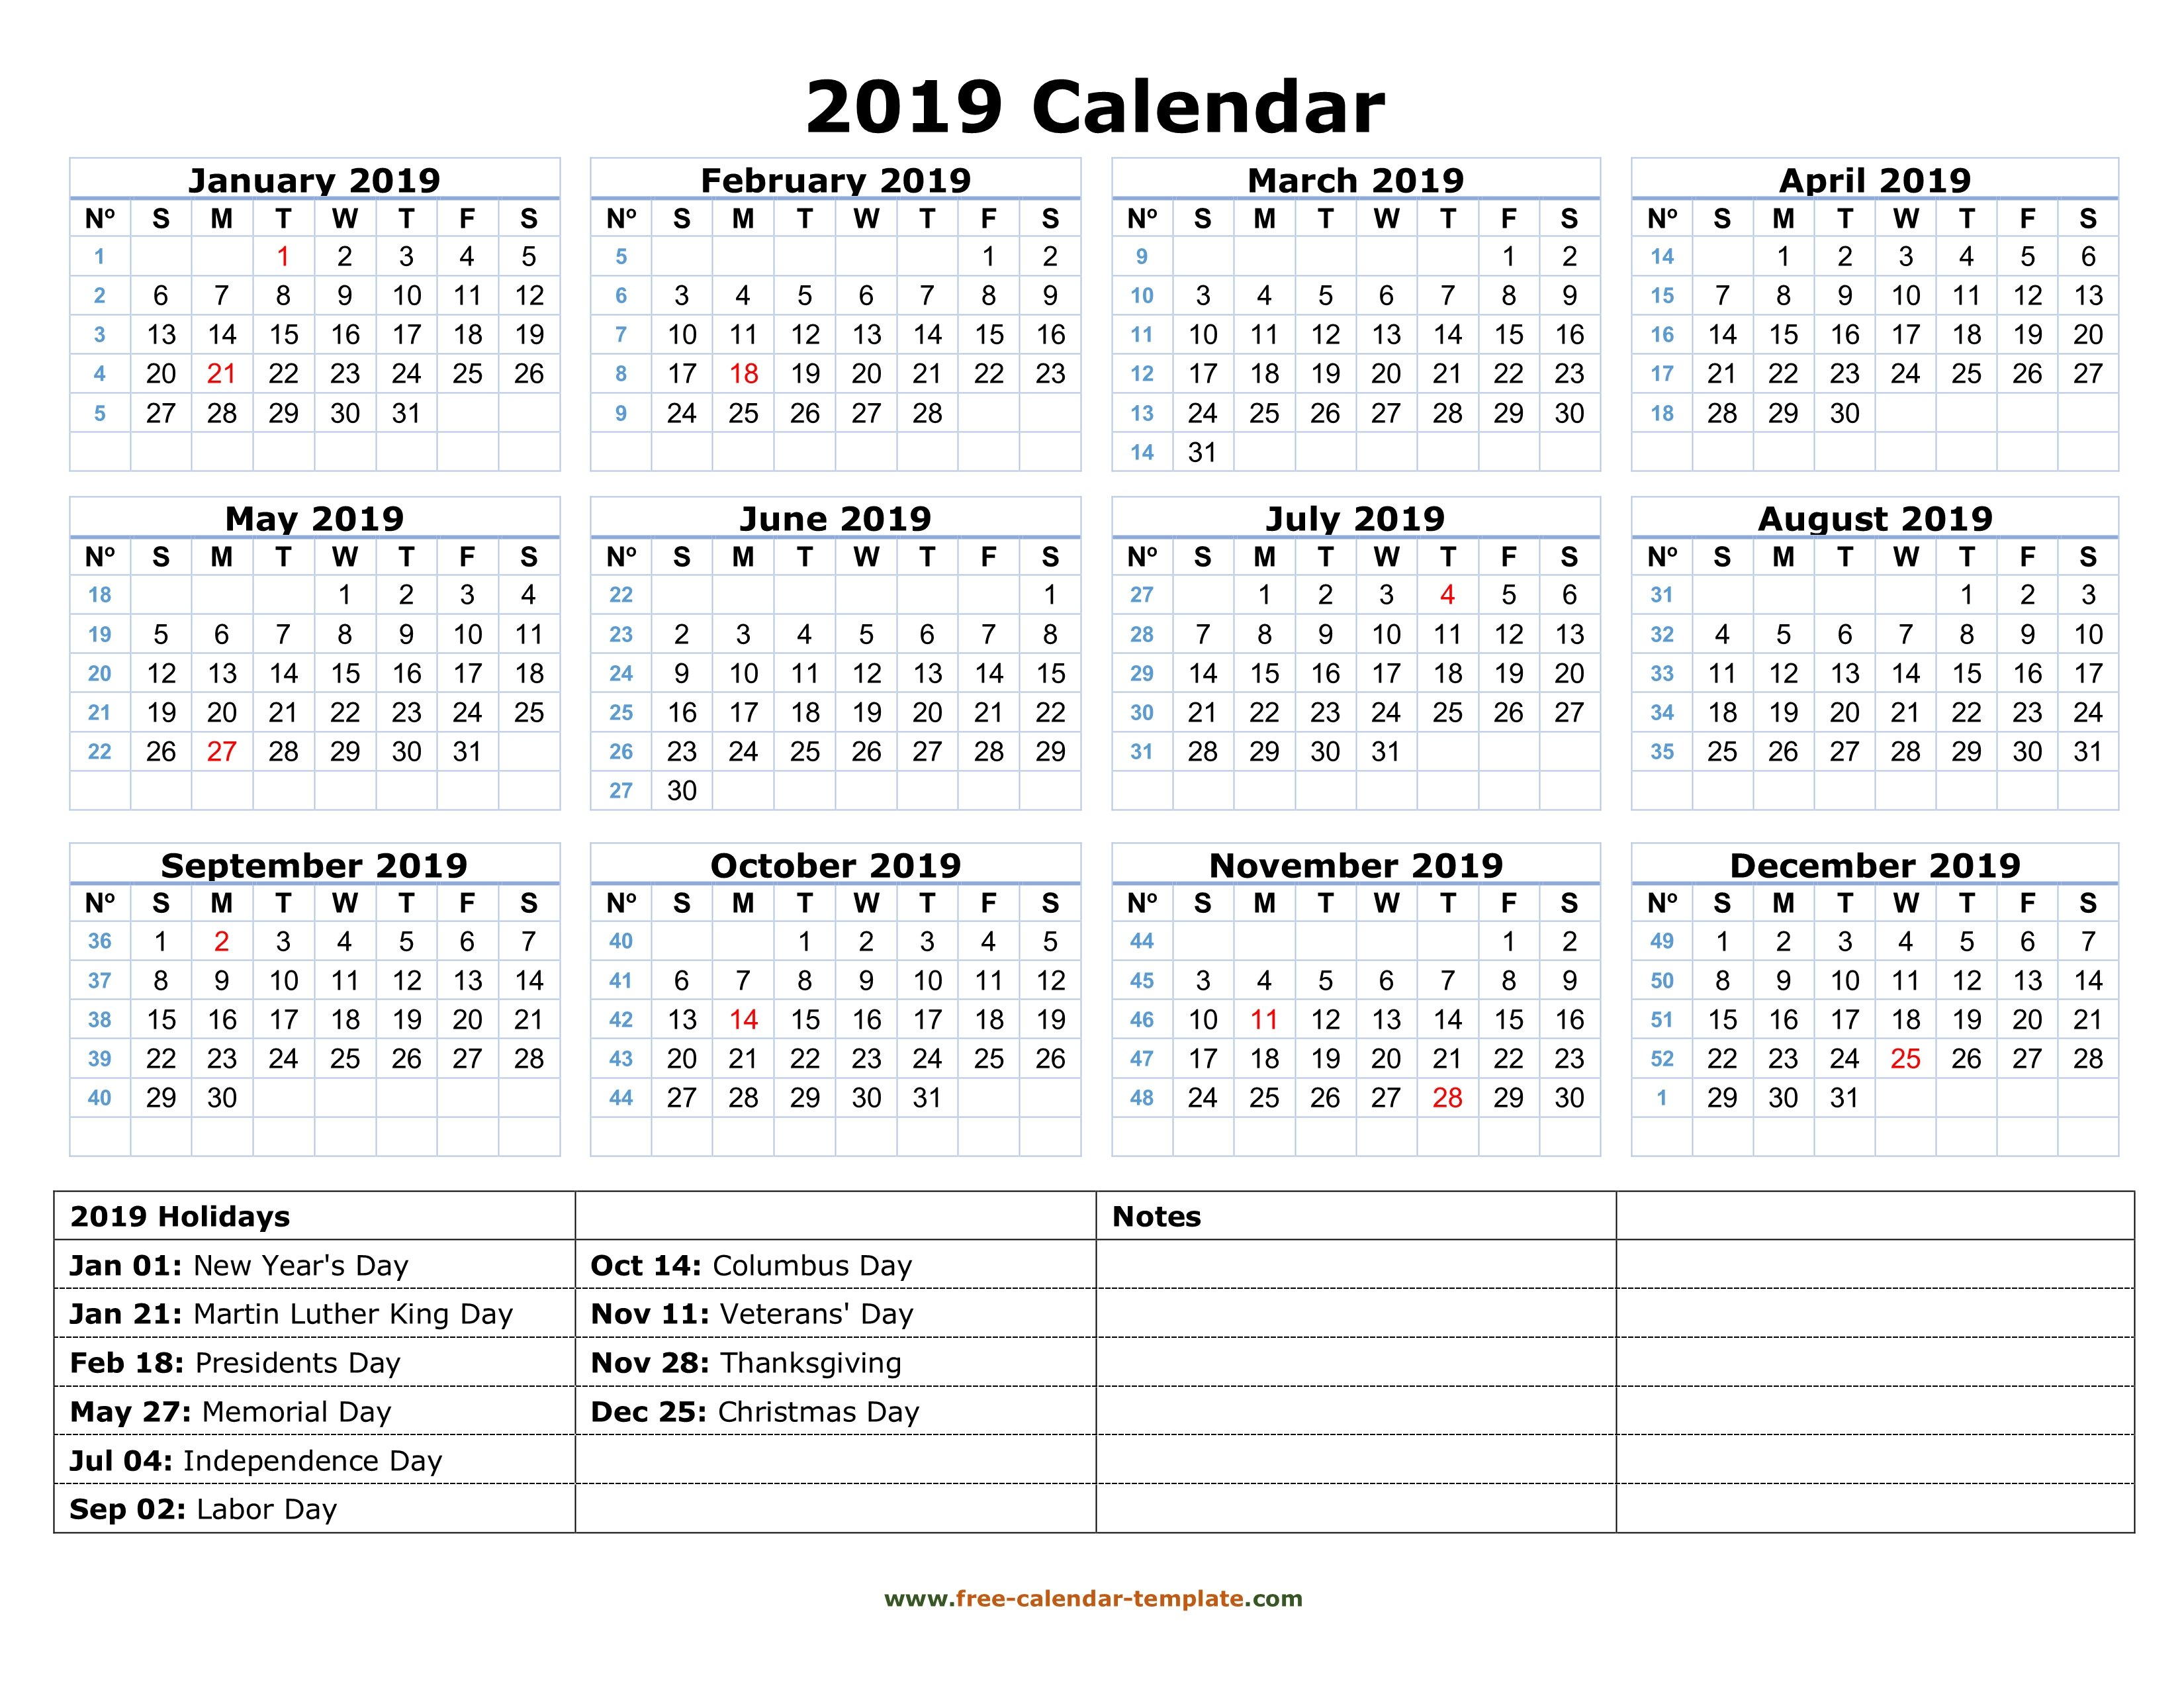 Printable Yearly Calendar 2019 With Us Holidays | Free-Calendar Calendar 2019 With Holidays Printable